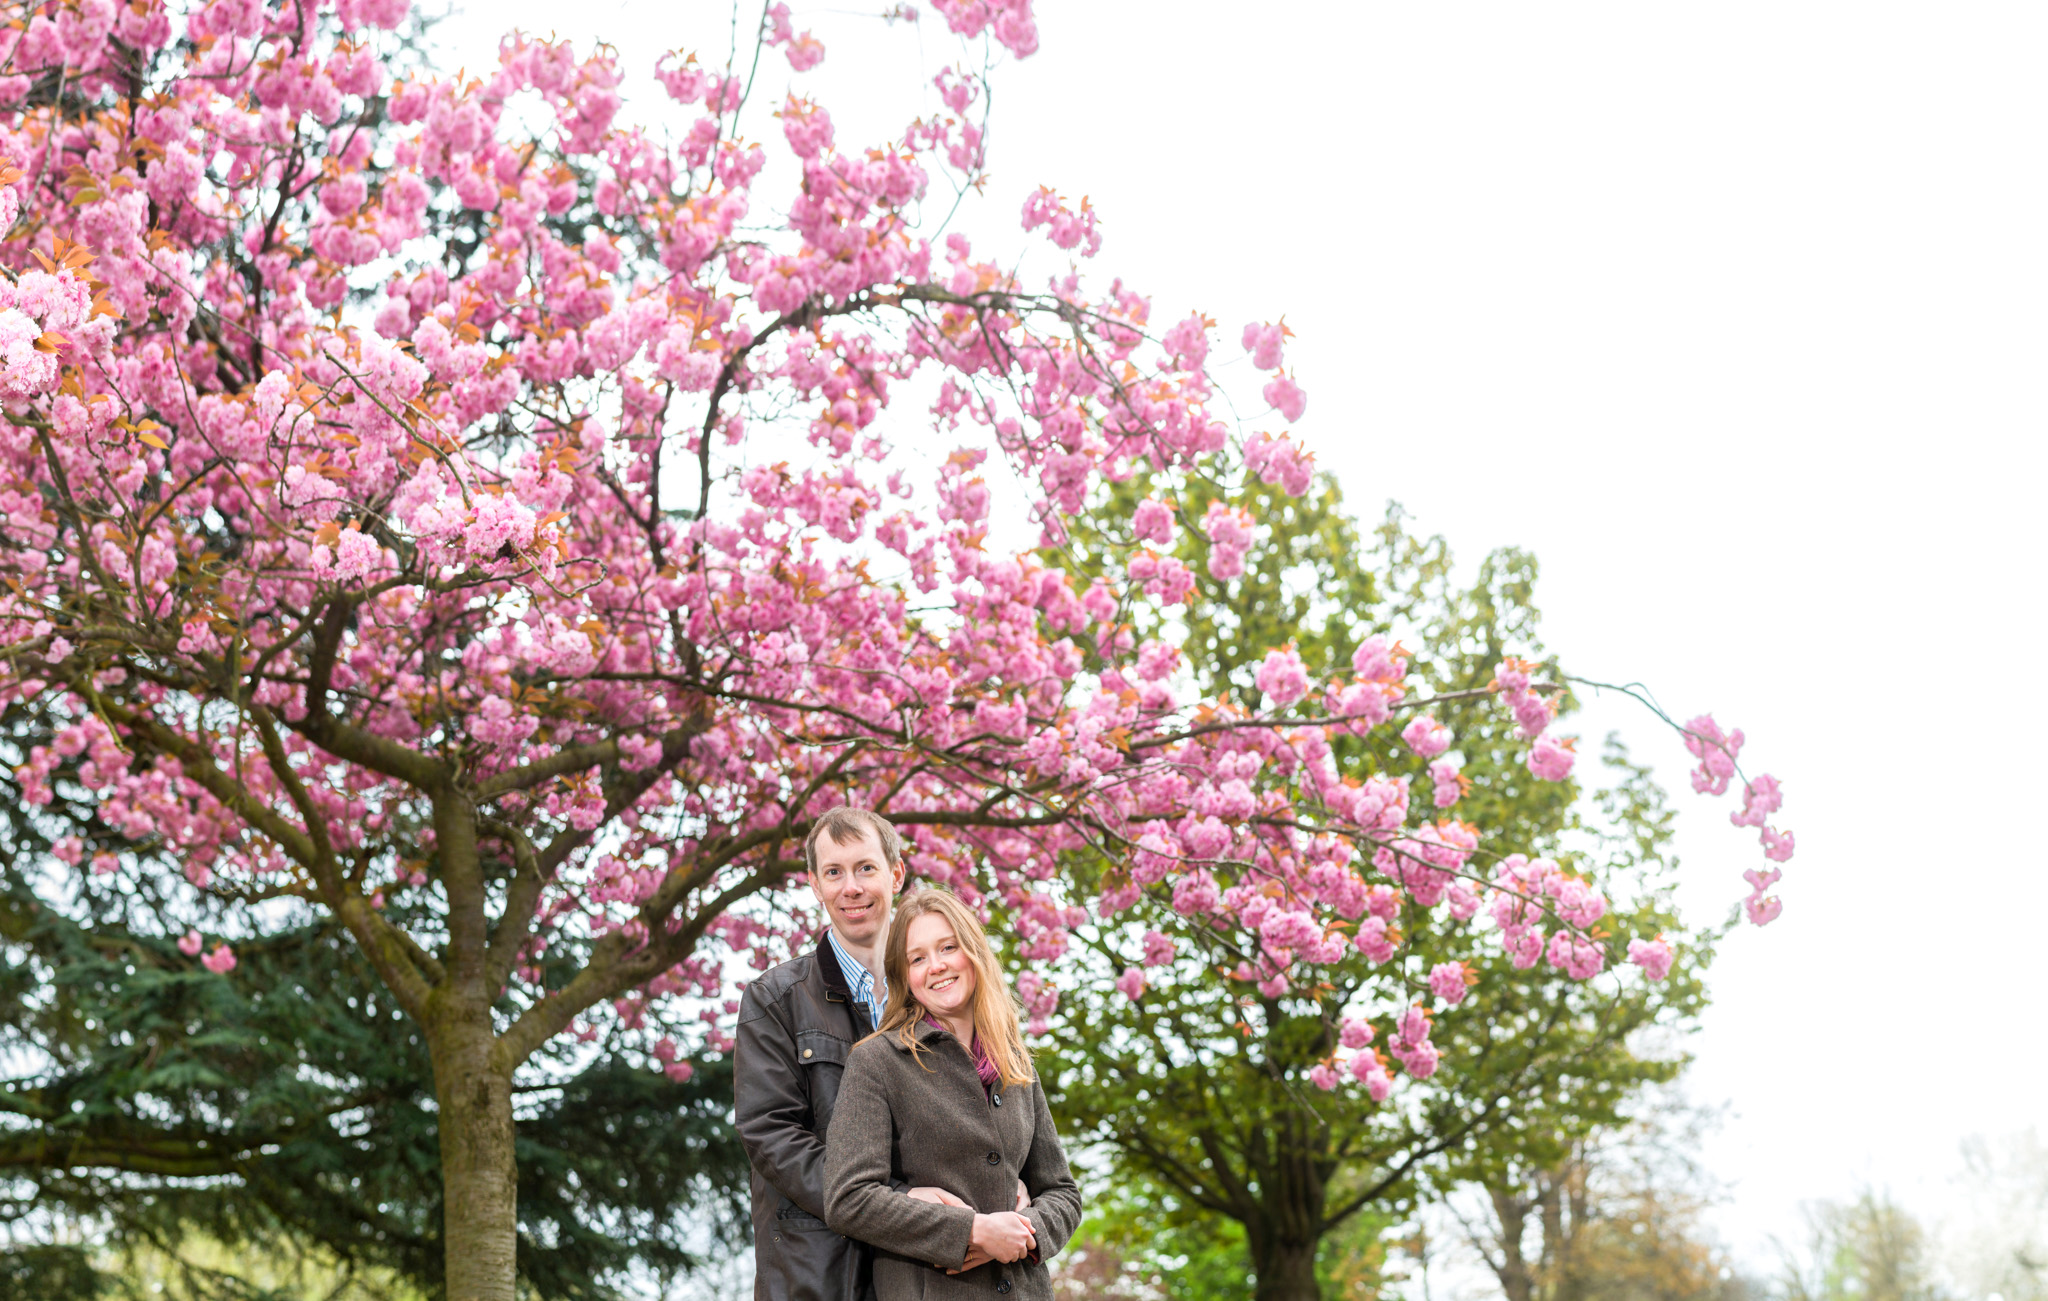 Cherry blossom tree with engaged couple